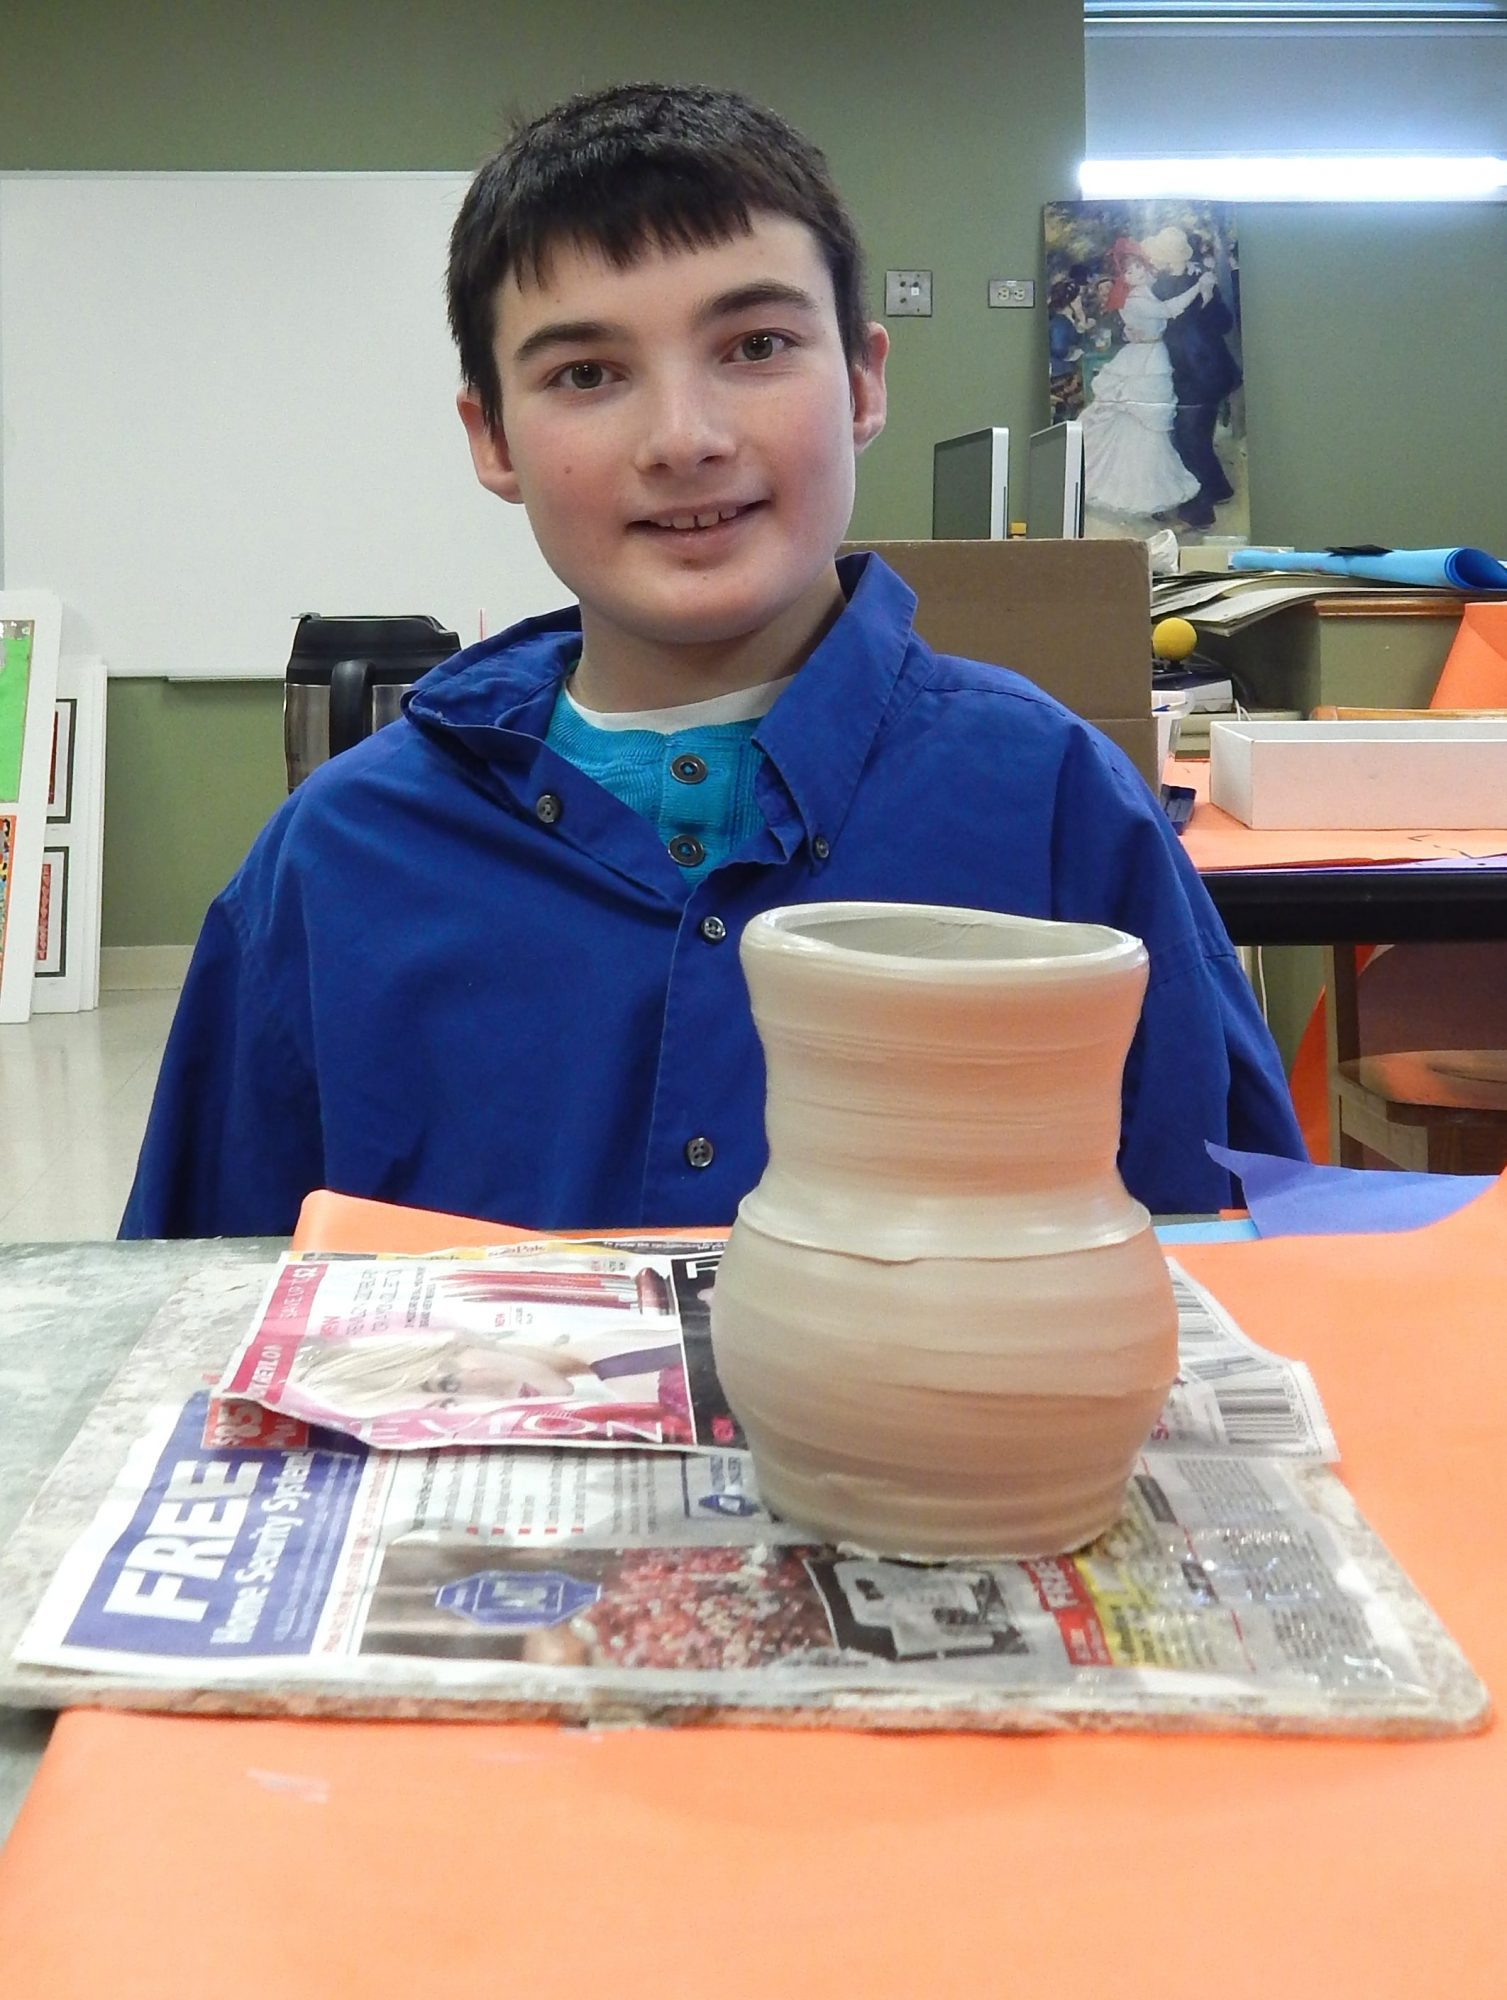 Patrick poses with the pottery he crafted